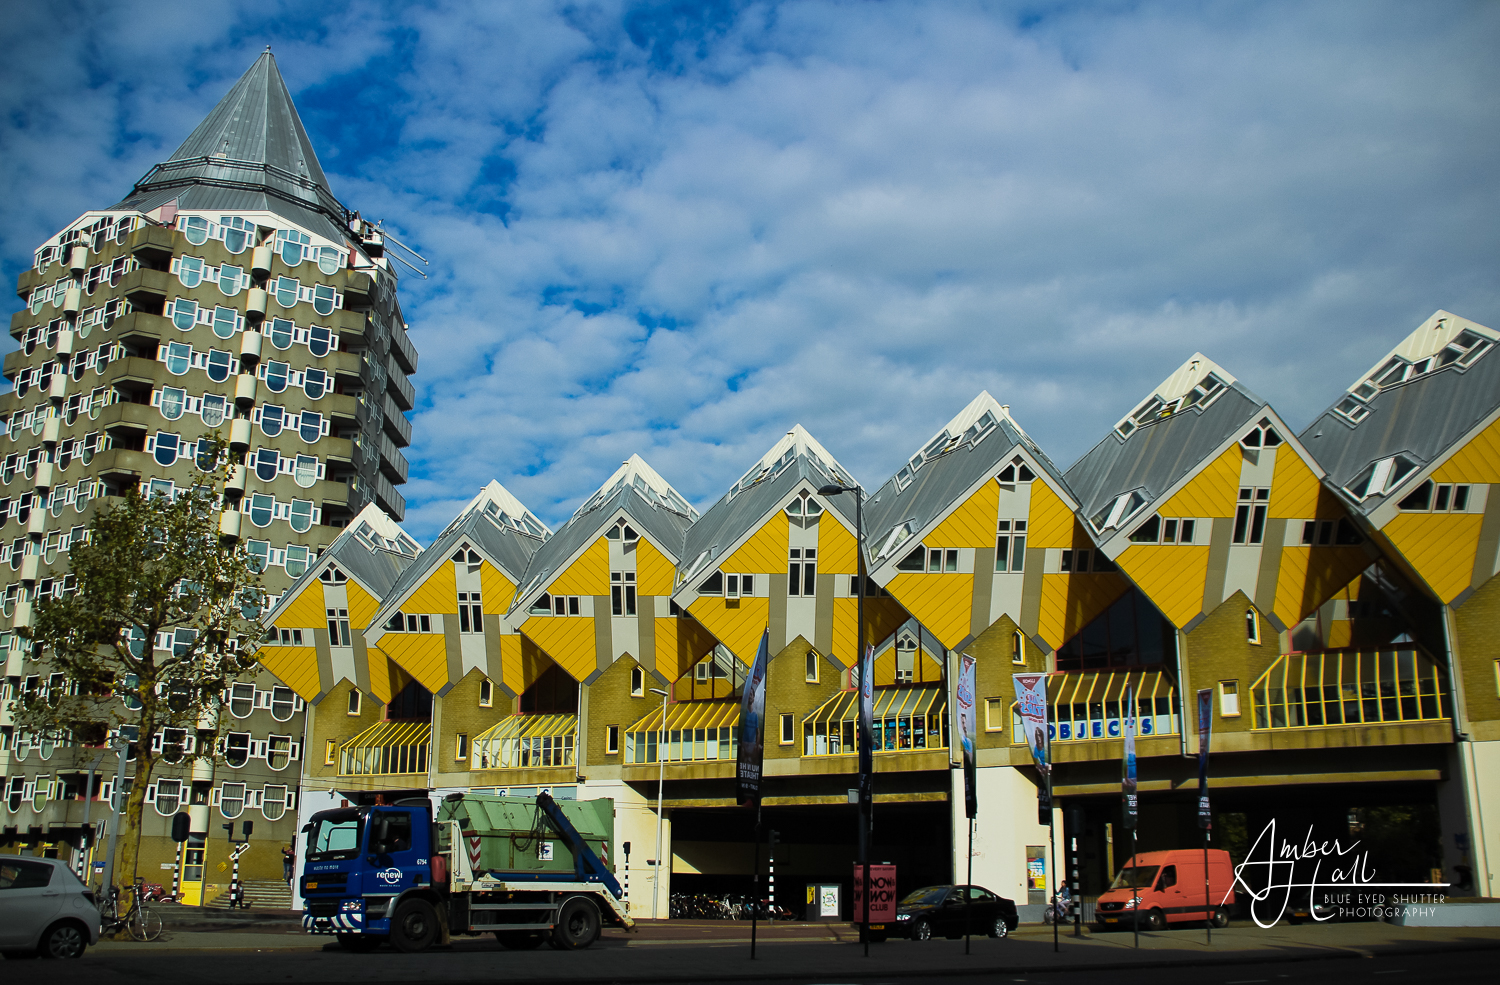 Cube Houses, Rotterdam_2018 (2 of 2)